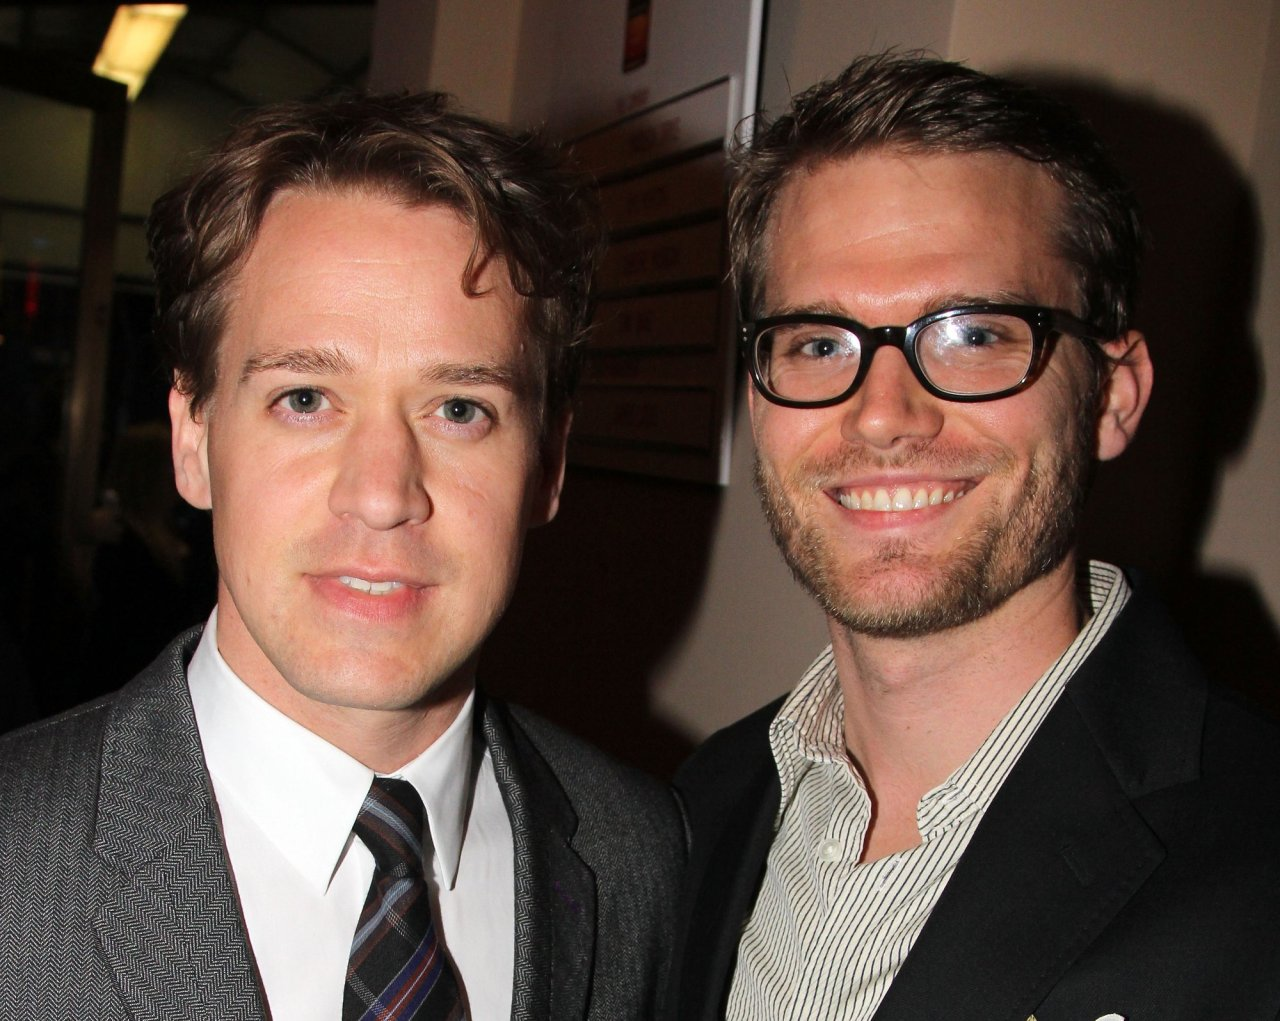 T.R. Knight with his now husband, Patrick Leahy